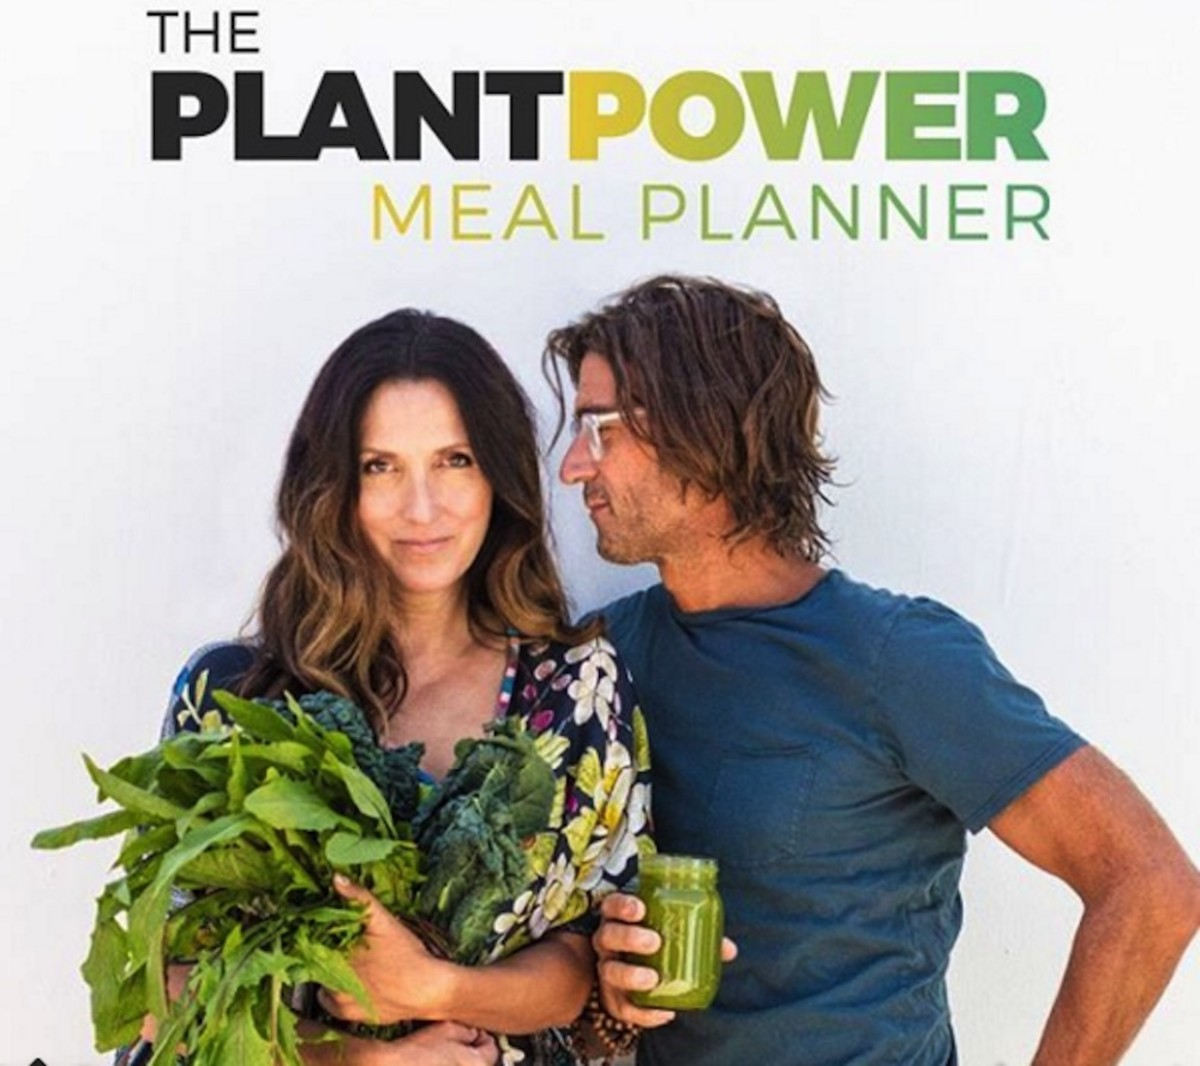 PlantPower Meal Planner